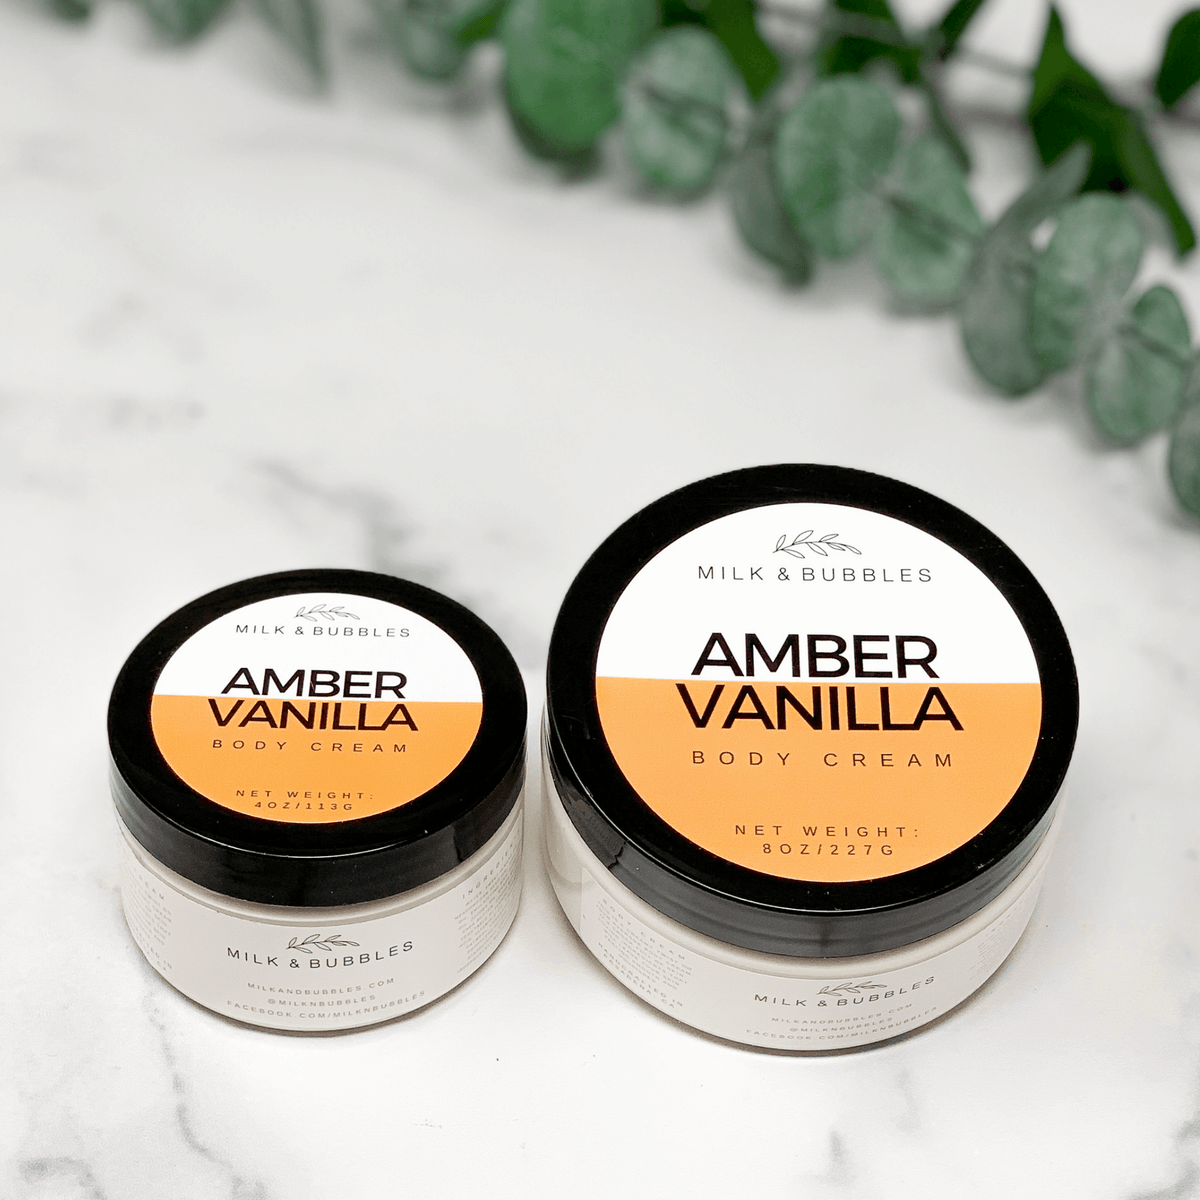 Amber Vanilla Body Cream